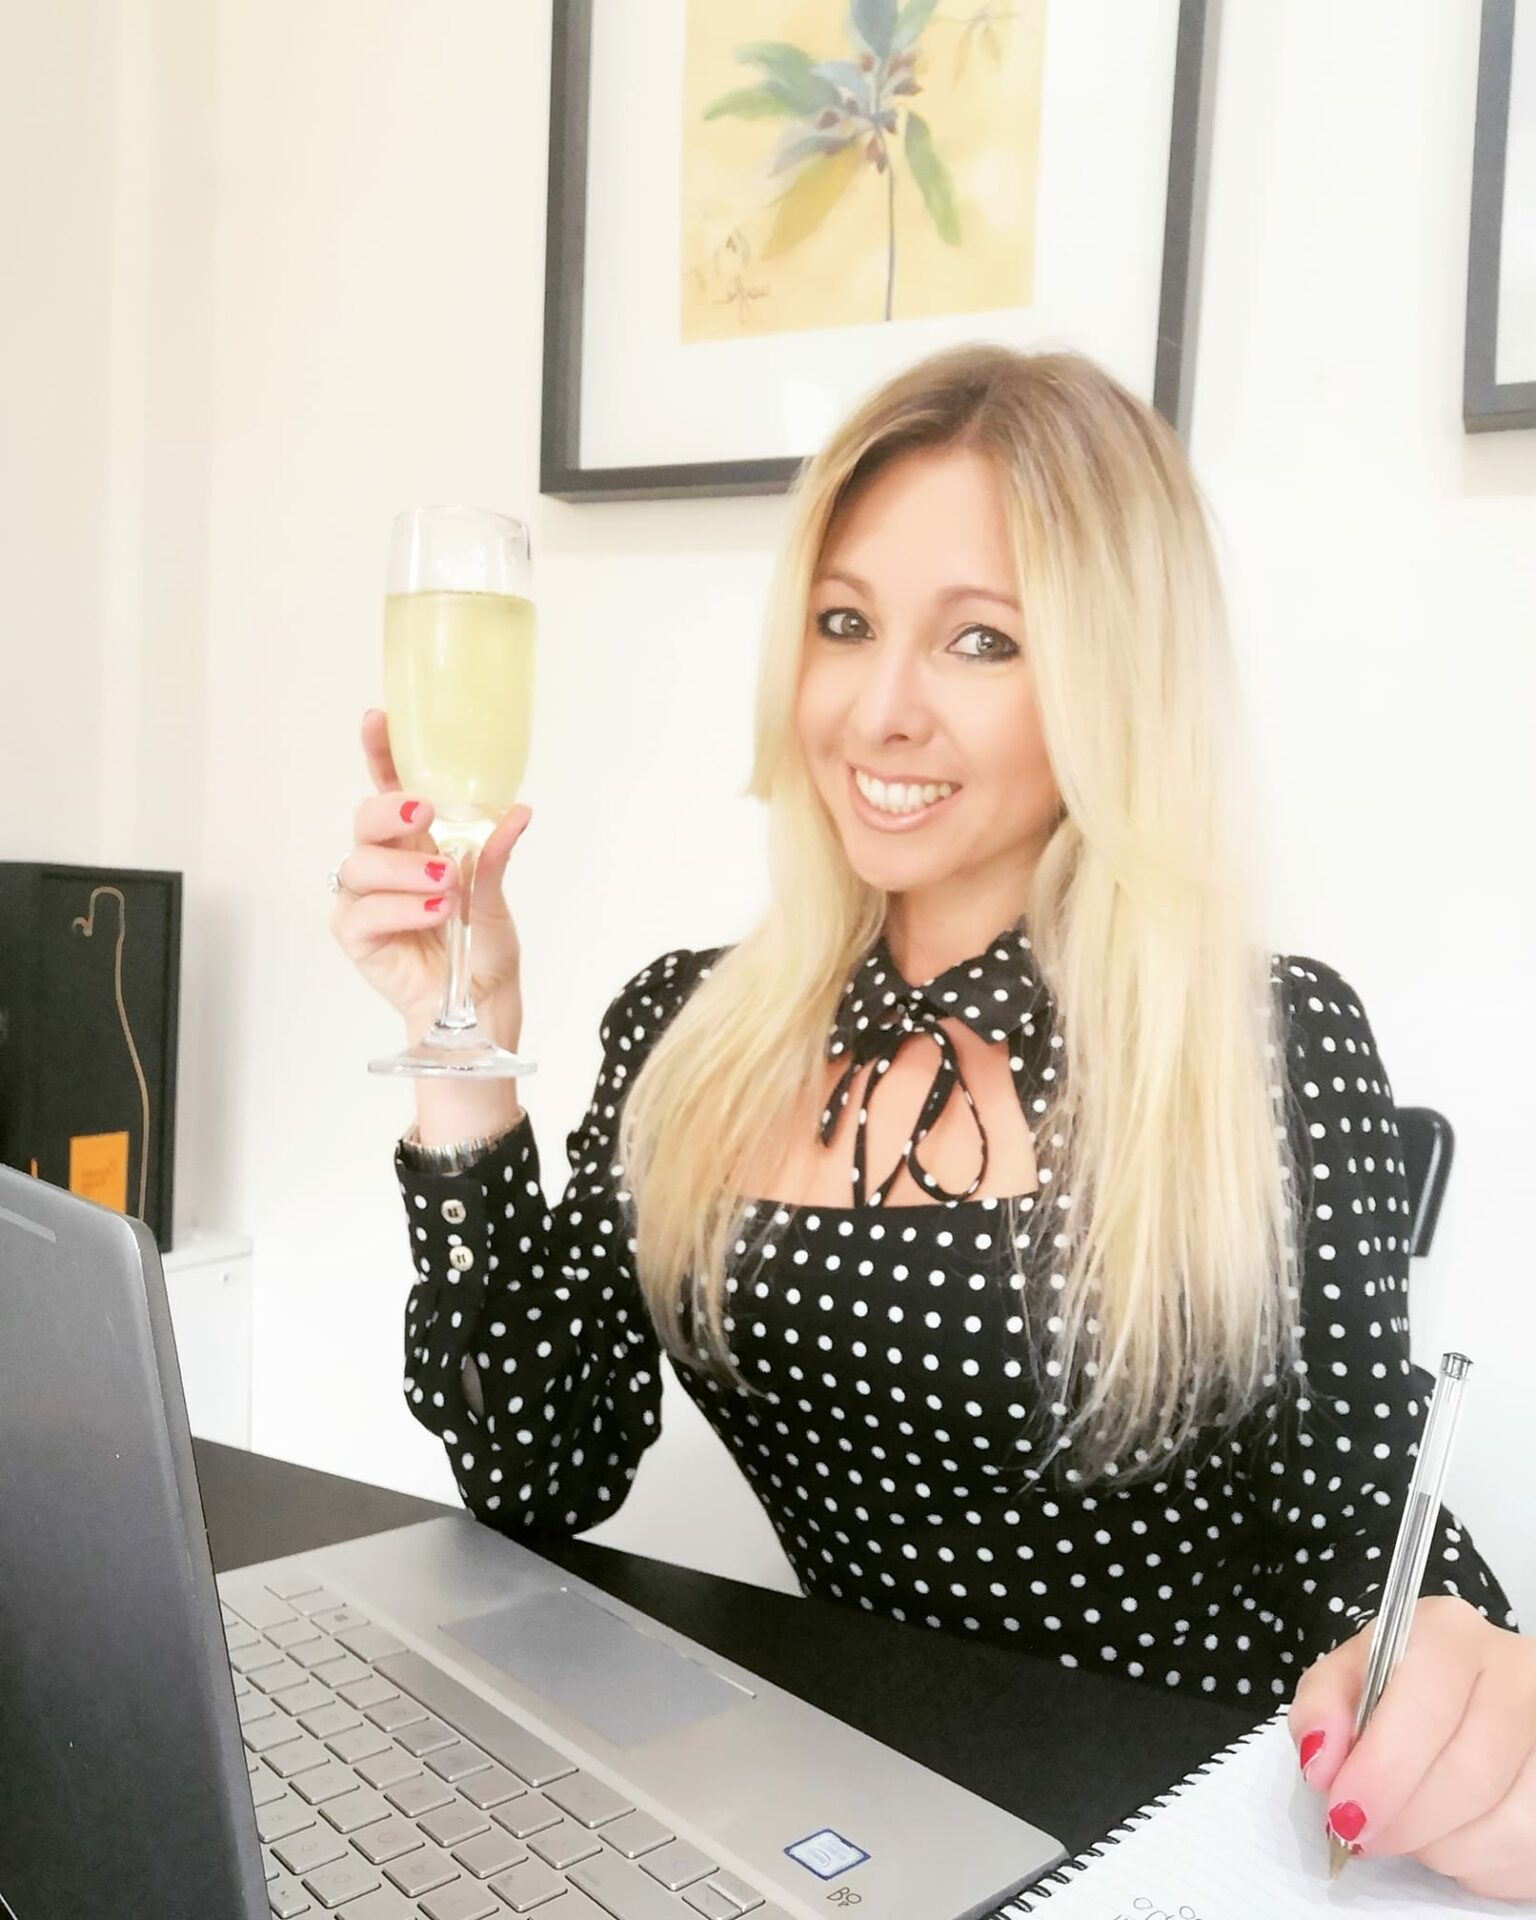 In this image, Laura is sat at a black desk with a laptop in front of her and writing on a notepad. In her right hand she is holding a glass of wine and is smiling at the camera.